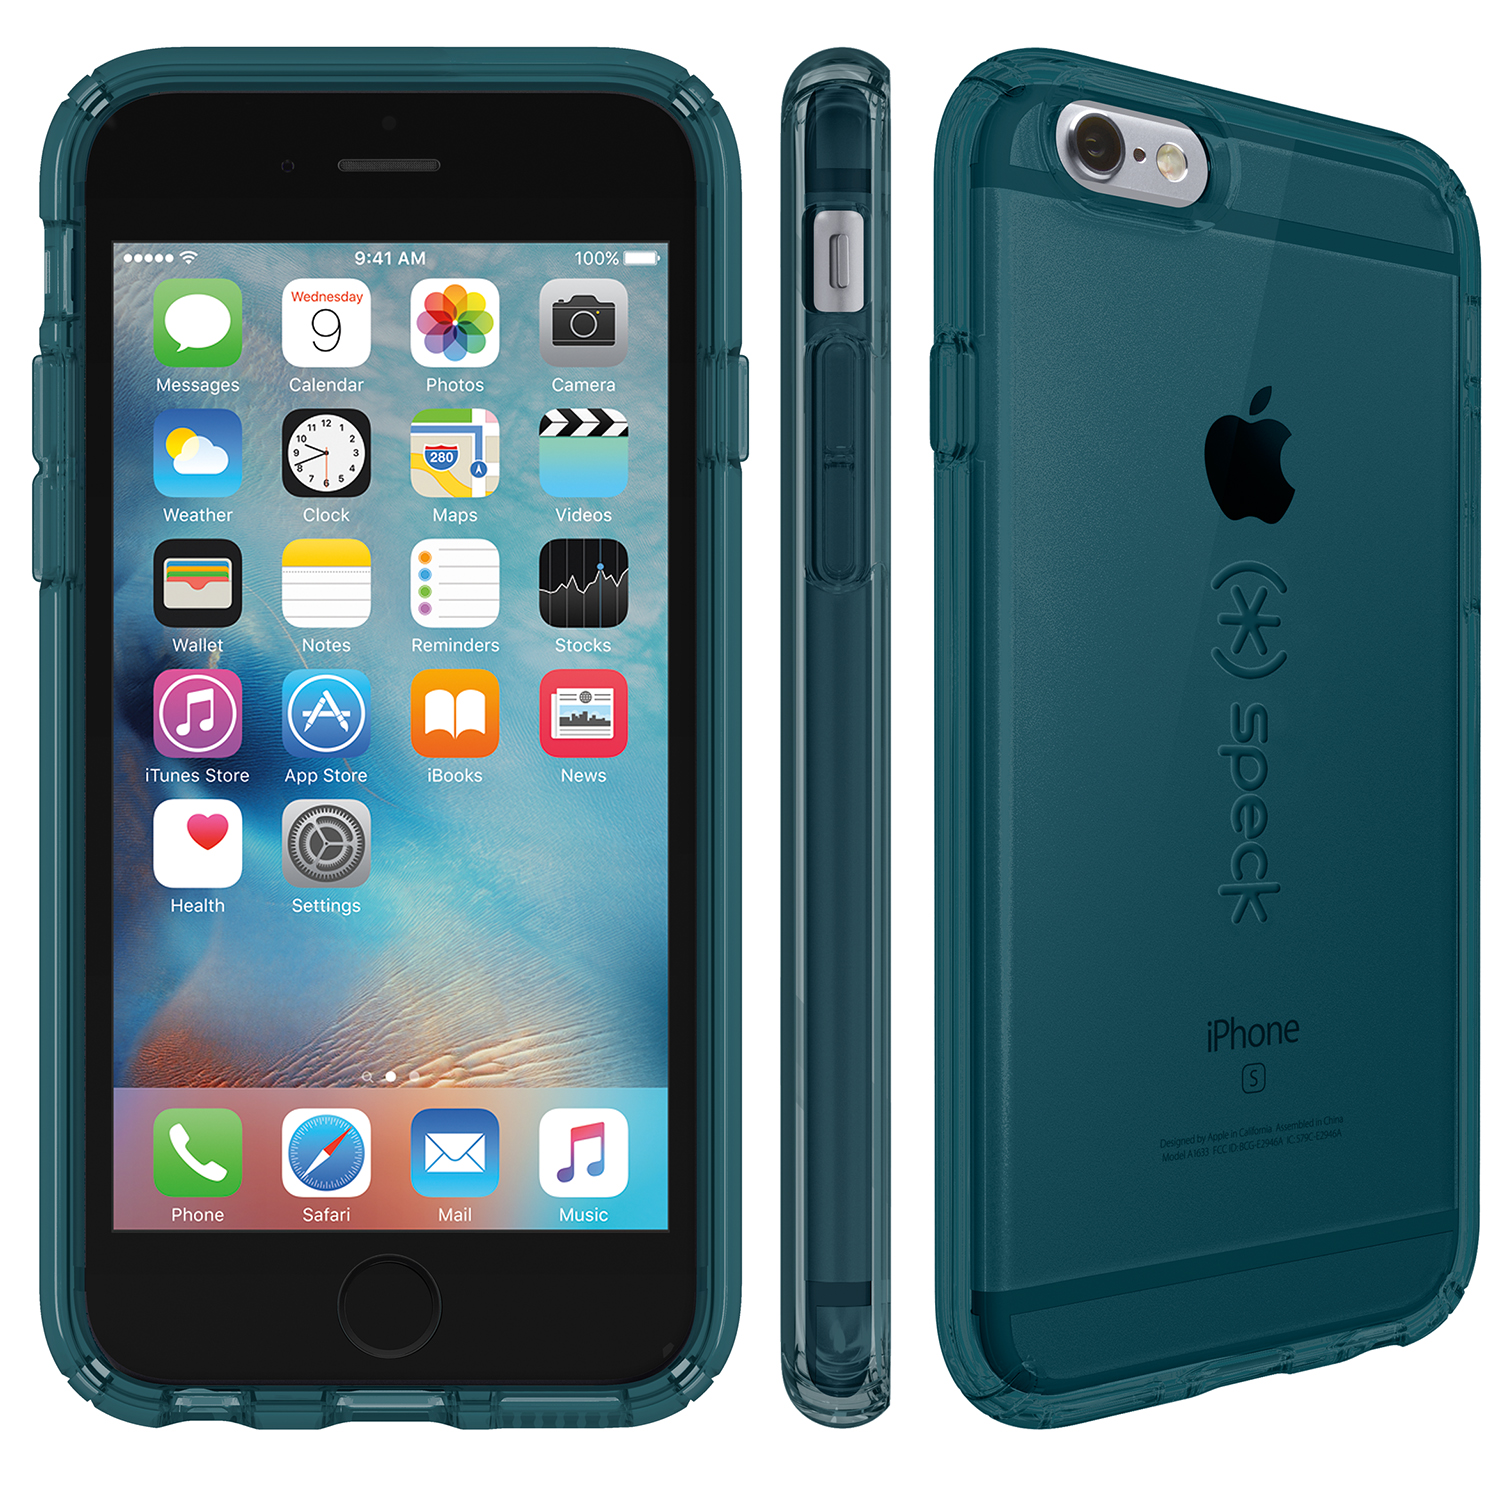 Compare prices for Speck CandyShell Clear iPhone 6s Plus and iPhone 6 Plus Cases Rainstorm Blue